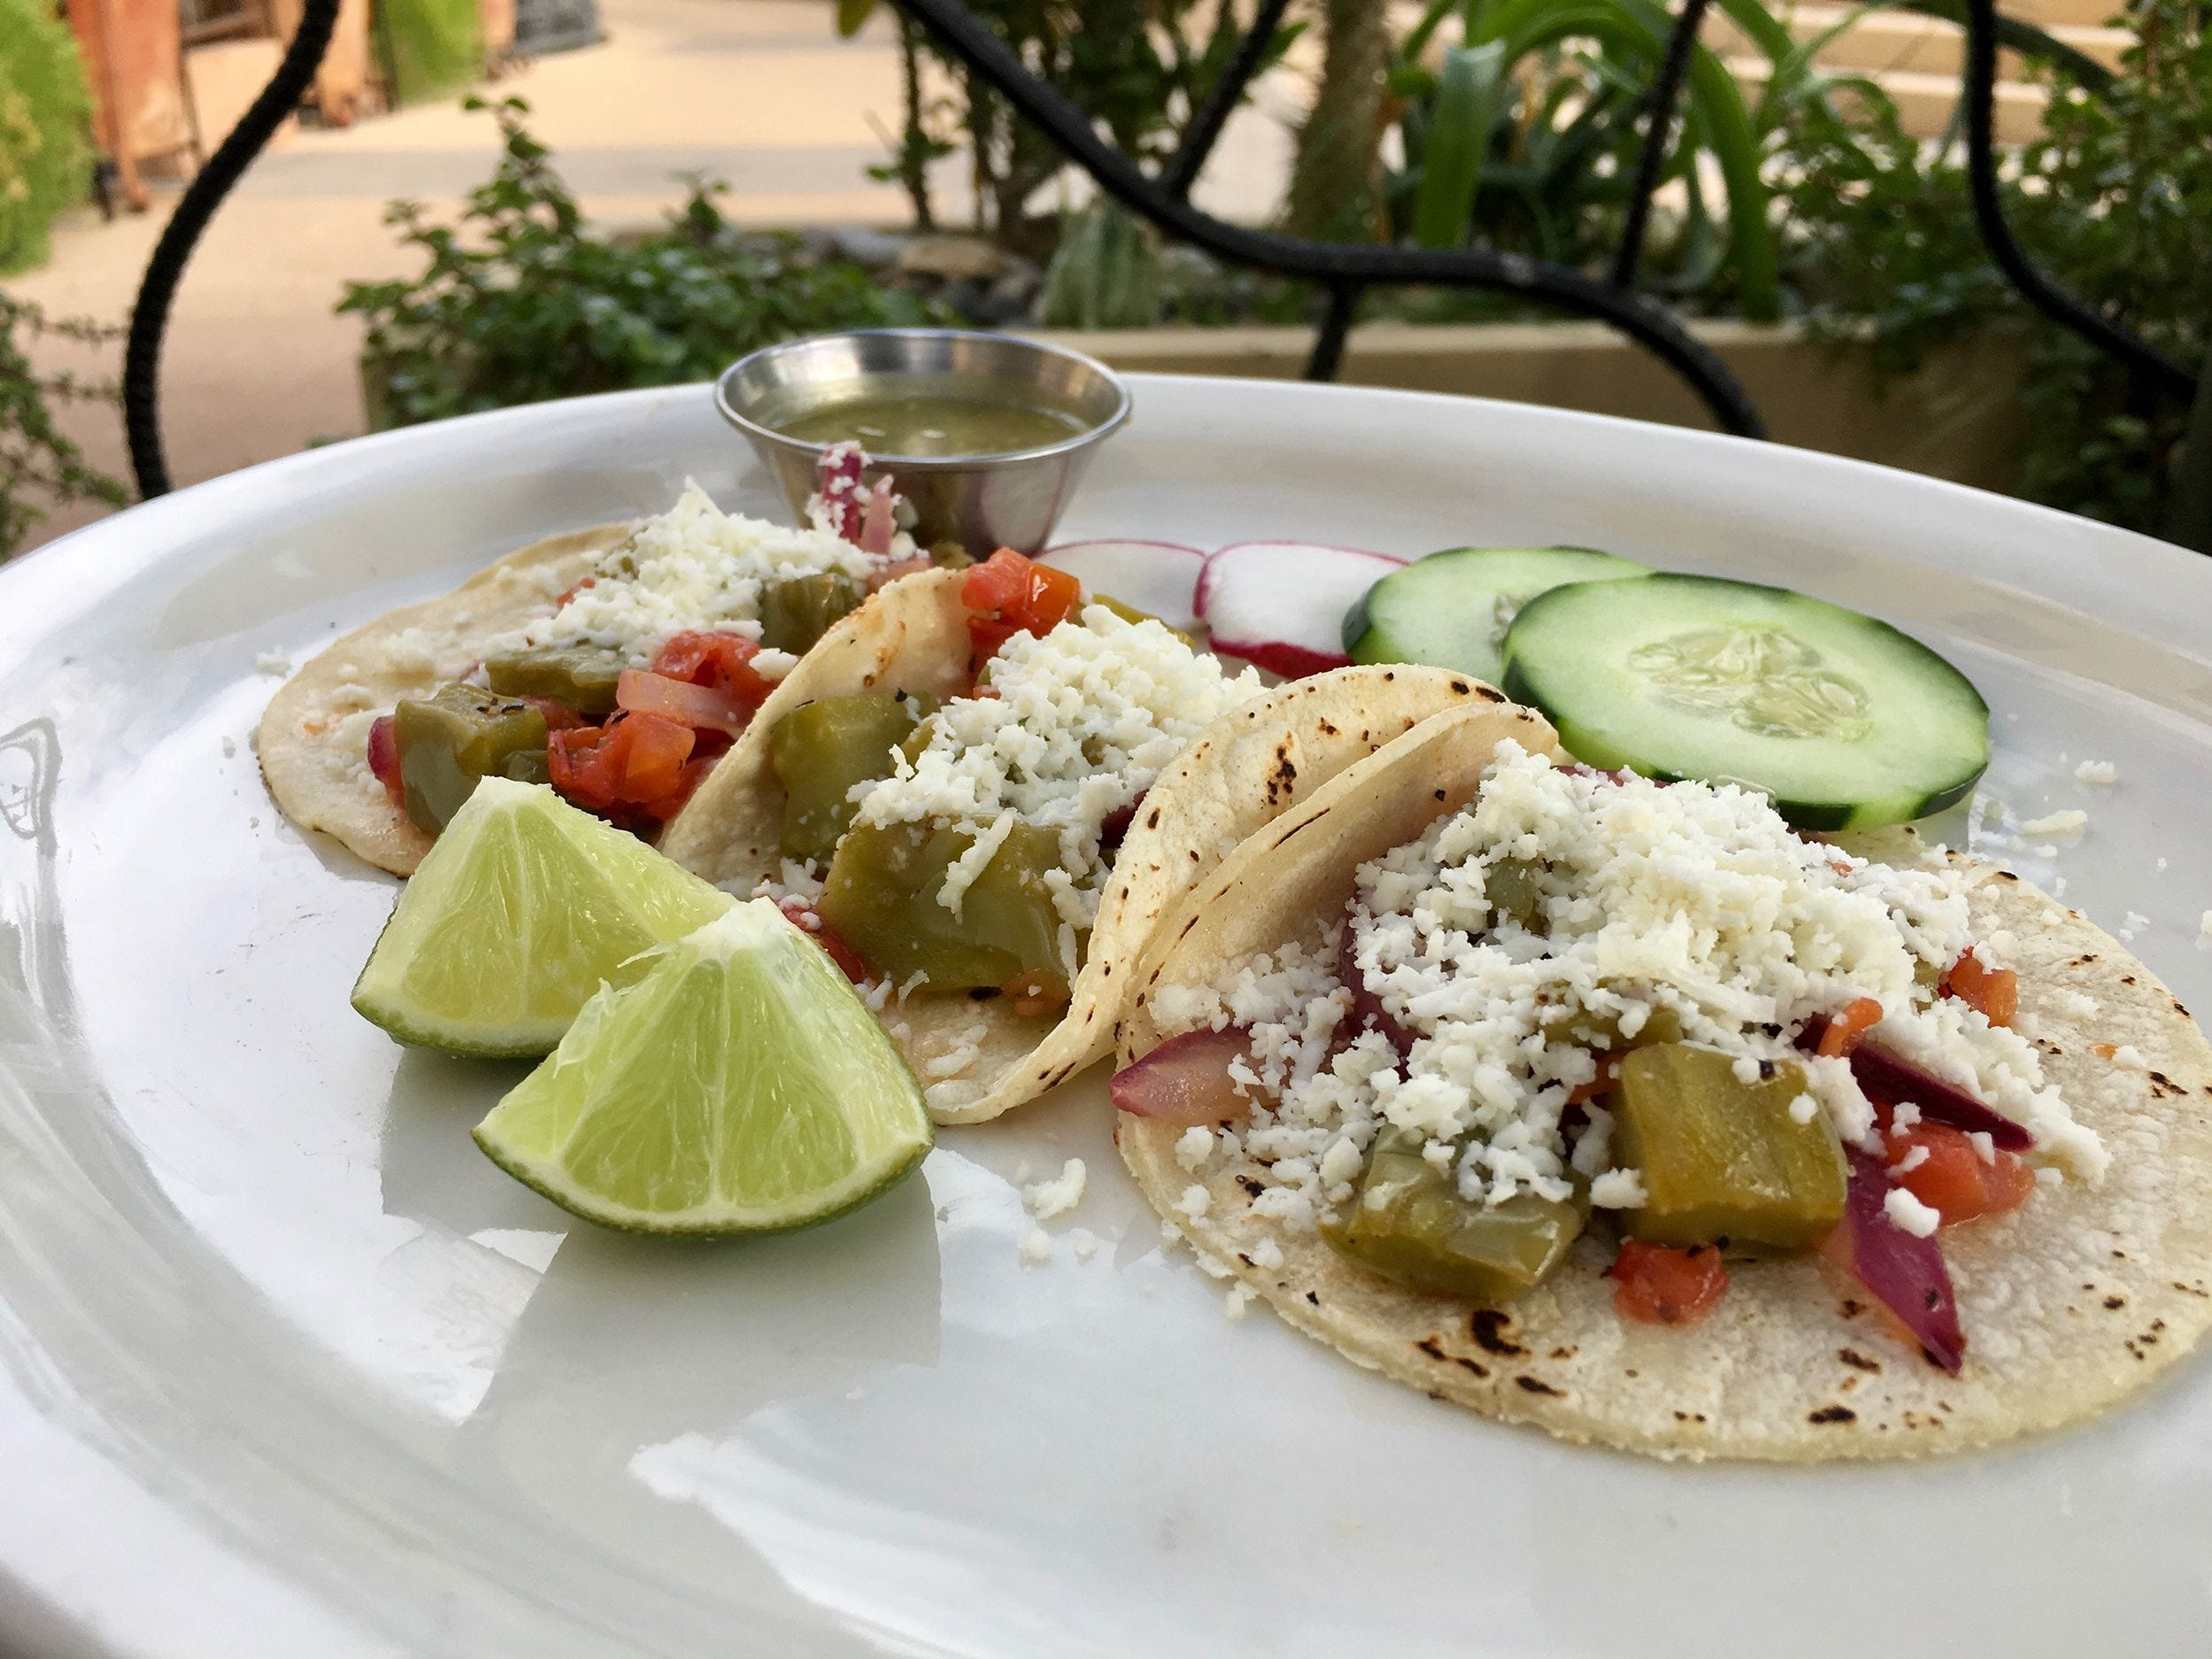 Barrio Queen | Enjoy food and drink specials like $4 tacos, $7 chips and guacamole, $7 roasted elote, mix-and-match beer buckets (5 for $20), $6 Dos XX Lager and Dos XX drafts, the casa margarita and more.Details: 388 N. Gilbert Road, Gilbert. 480-634-5025. Also, Desert Ridge Marketplace, Loop 101 and Tatum Boulevard, Phoenix. 480-466-7445. Other locations at barrioqueen.com.